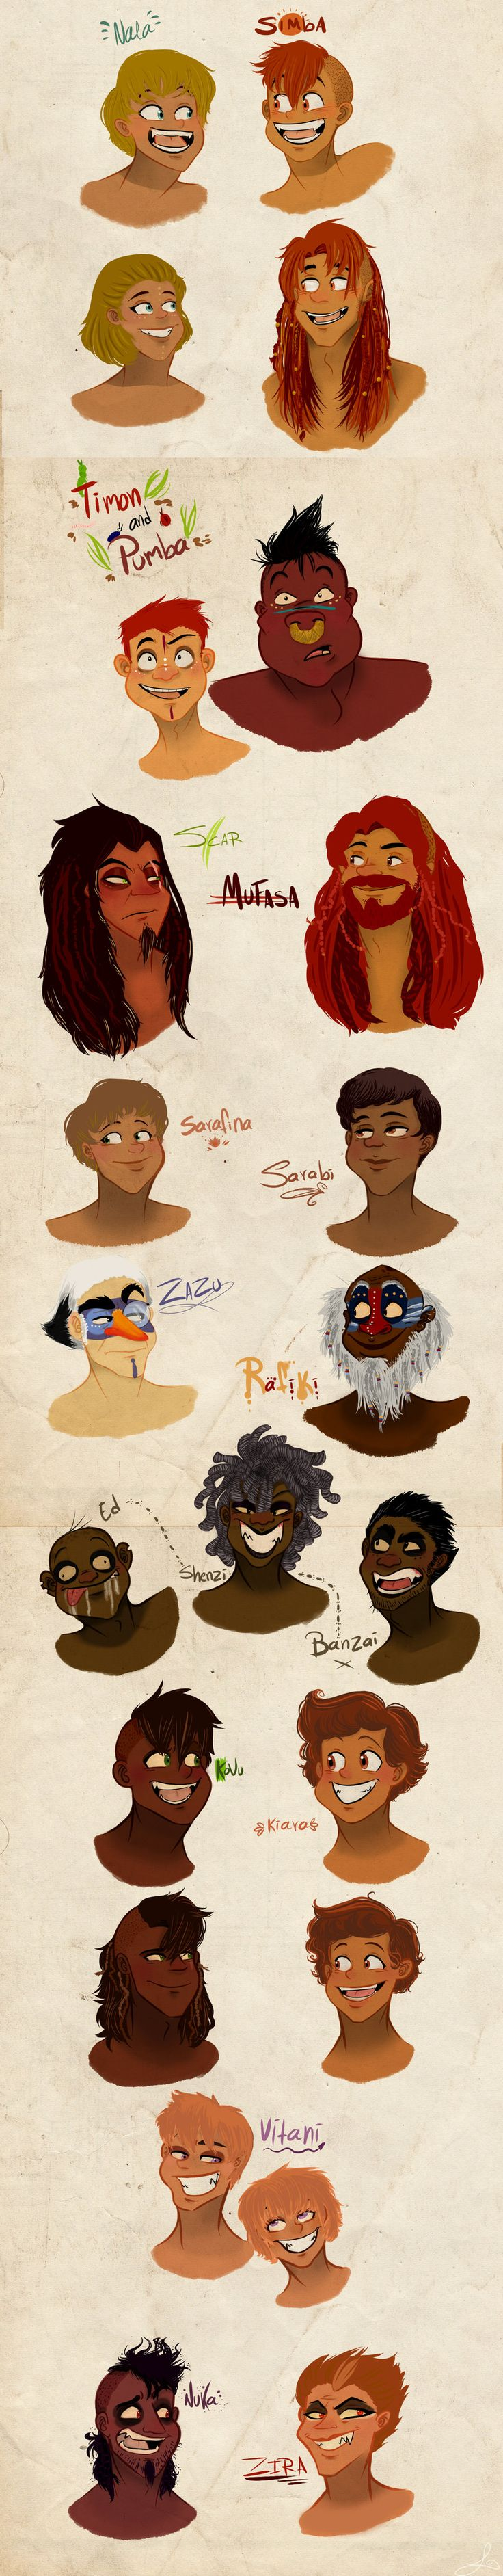 Humanized Lion King Characters - Makeup/Costume Inspiration